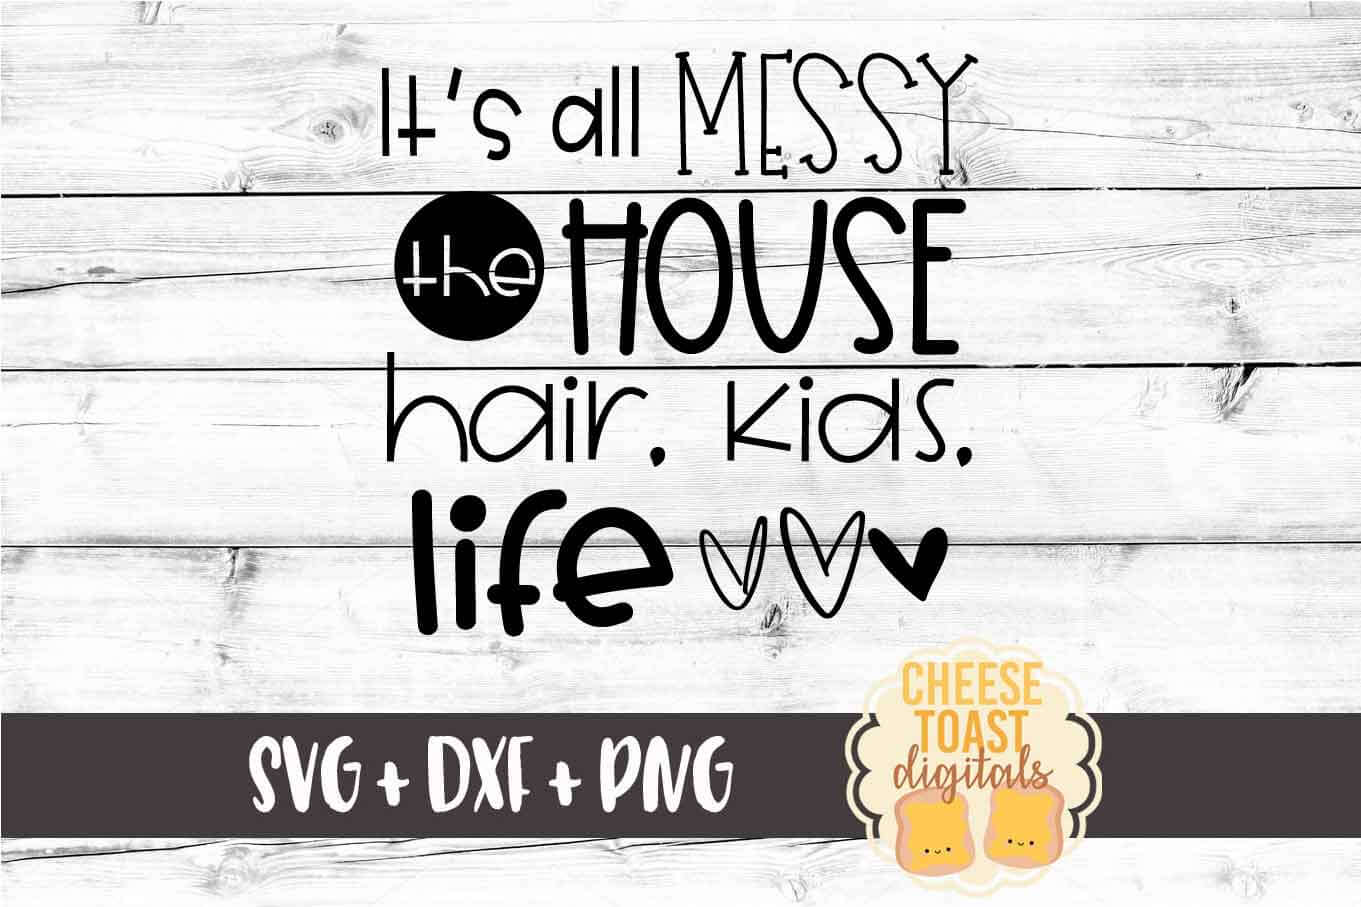 It's All Messy The House Hair Kids Life - Funny Mom SVG PNG example image 2